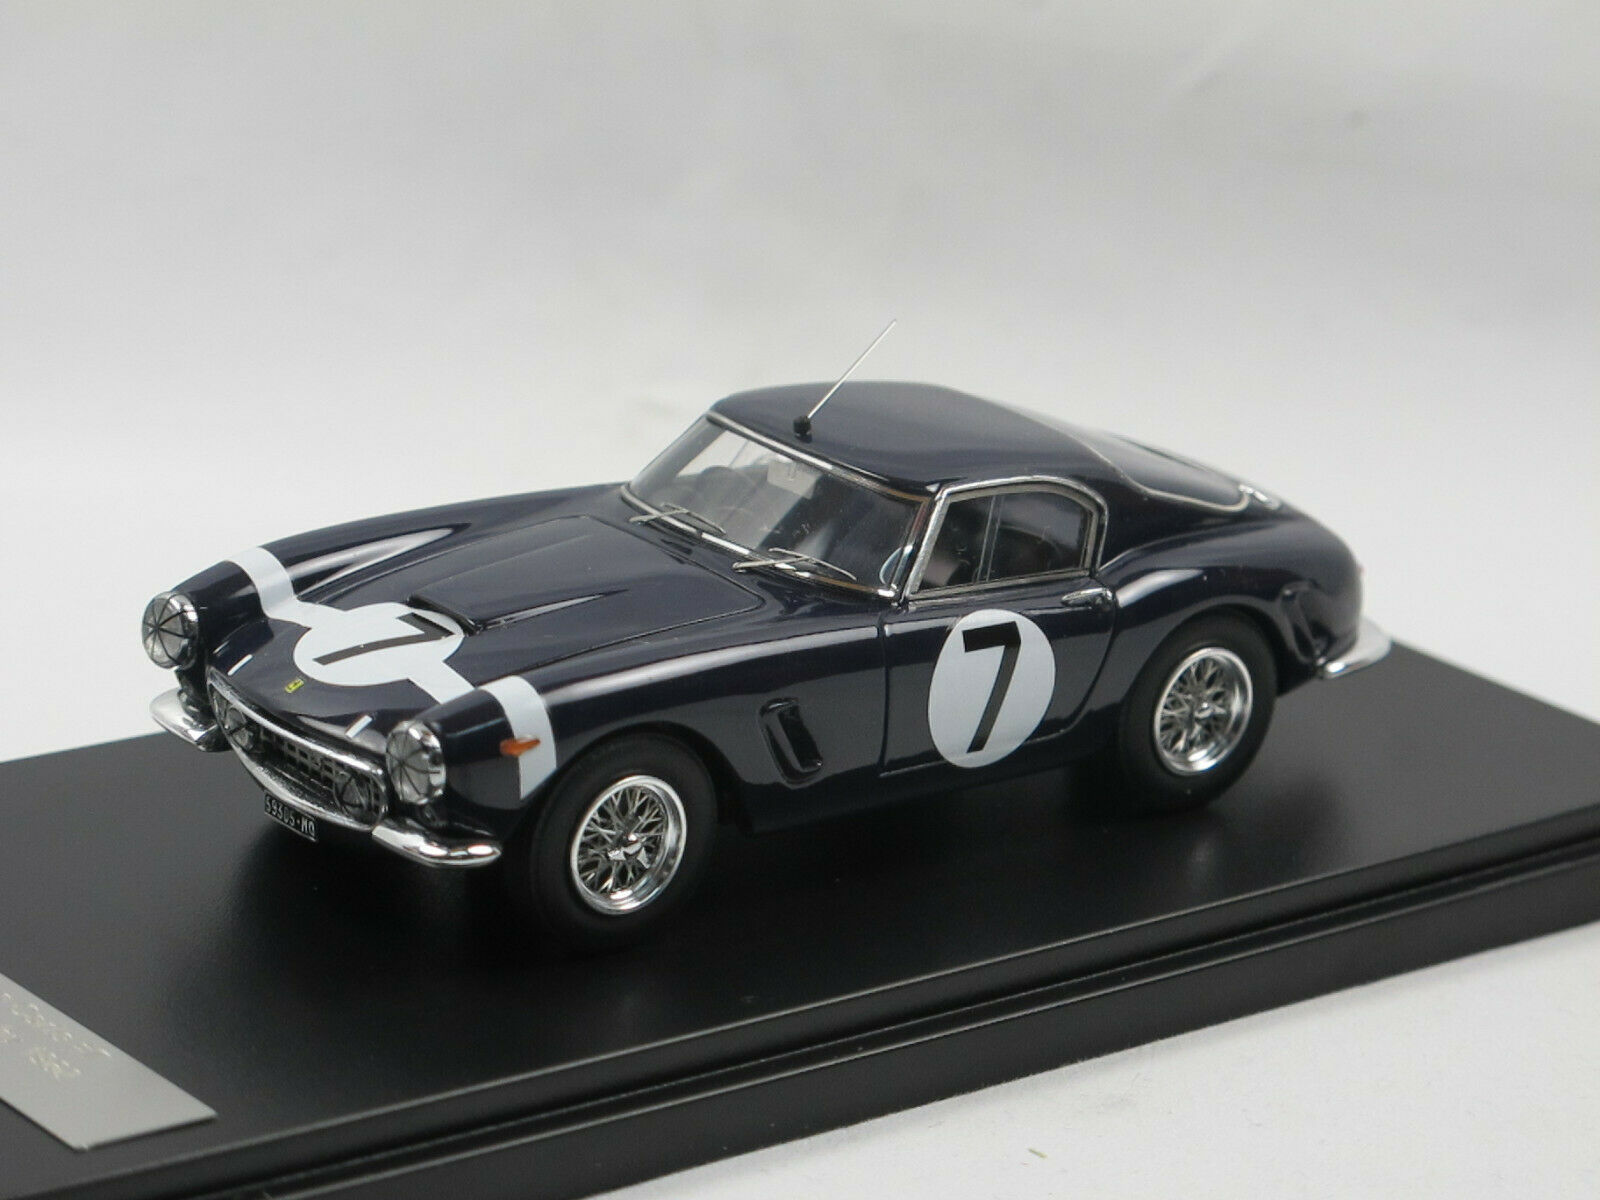 Matrice FERRARI 250 GT SWB Winner RAC TOURIST TROPHY 1960 Stirling Moss  7 1 43